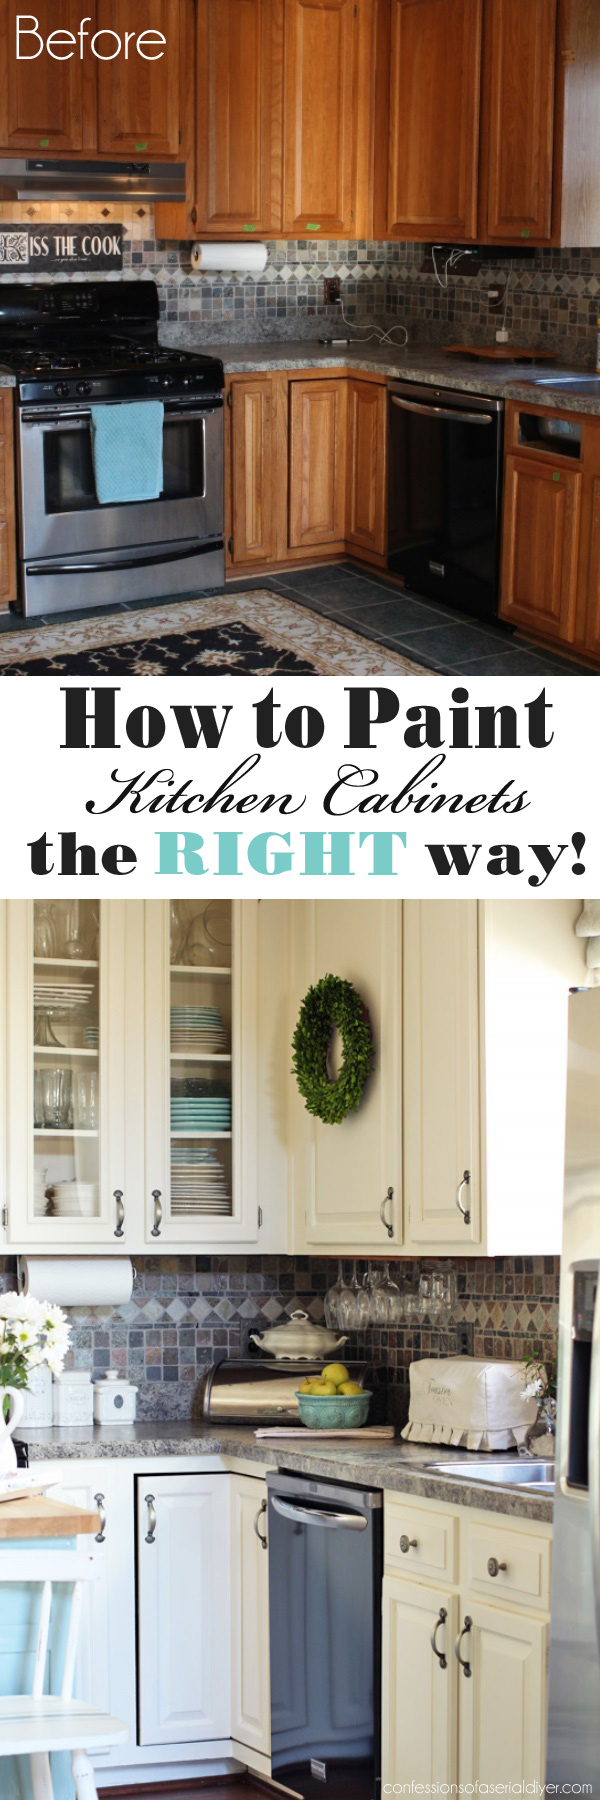 How To Paint Kitchen Cabinets The Right Way Confessions